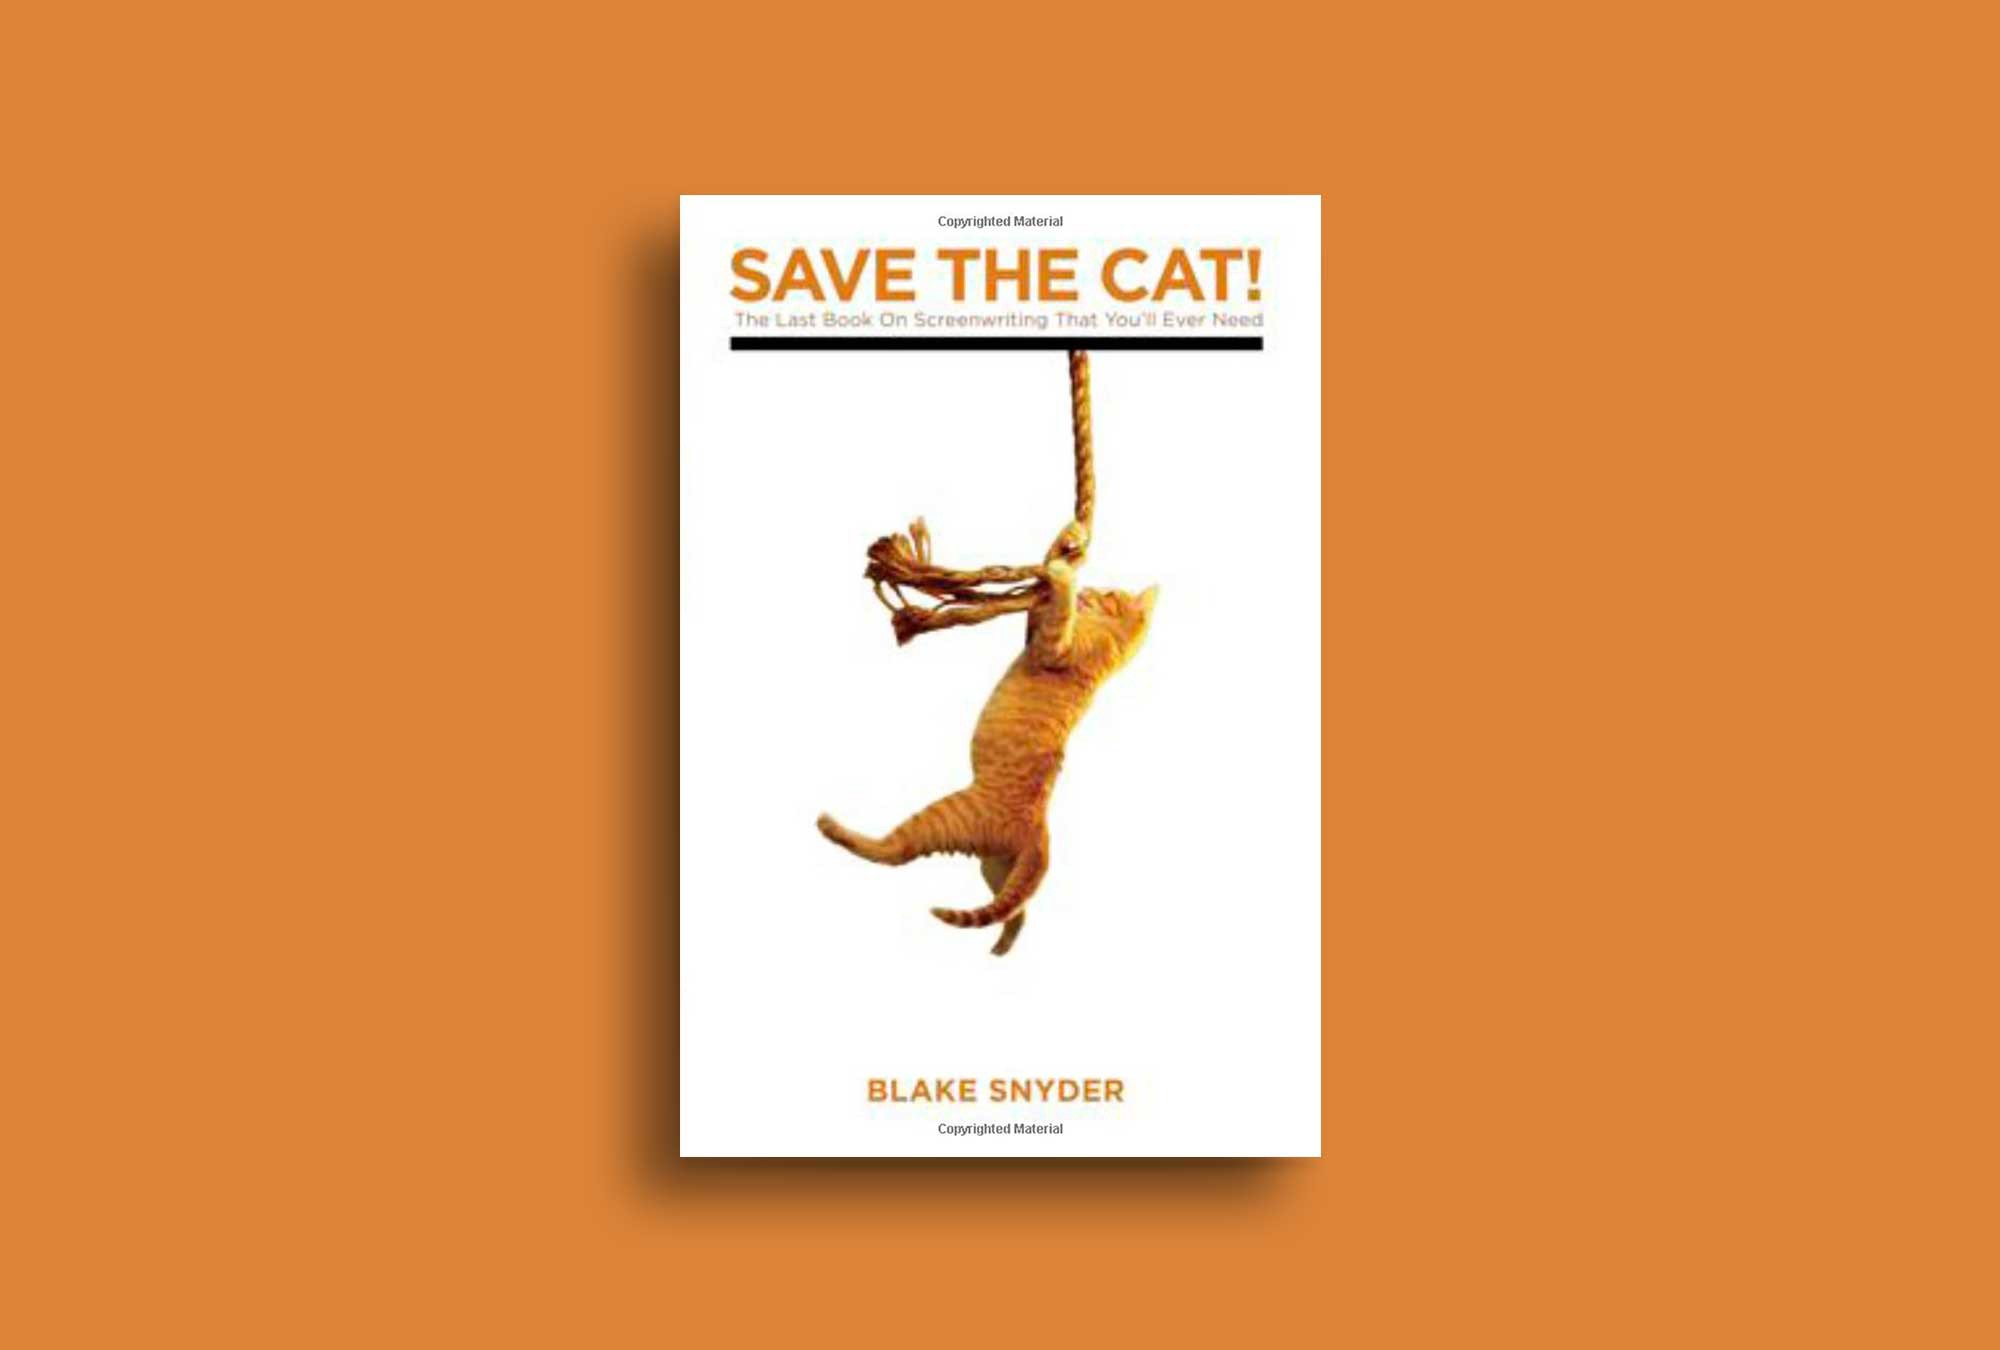 Blake snyder 39 s save the cat story beat template inside for Save the cat template